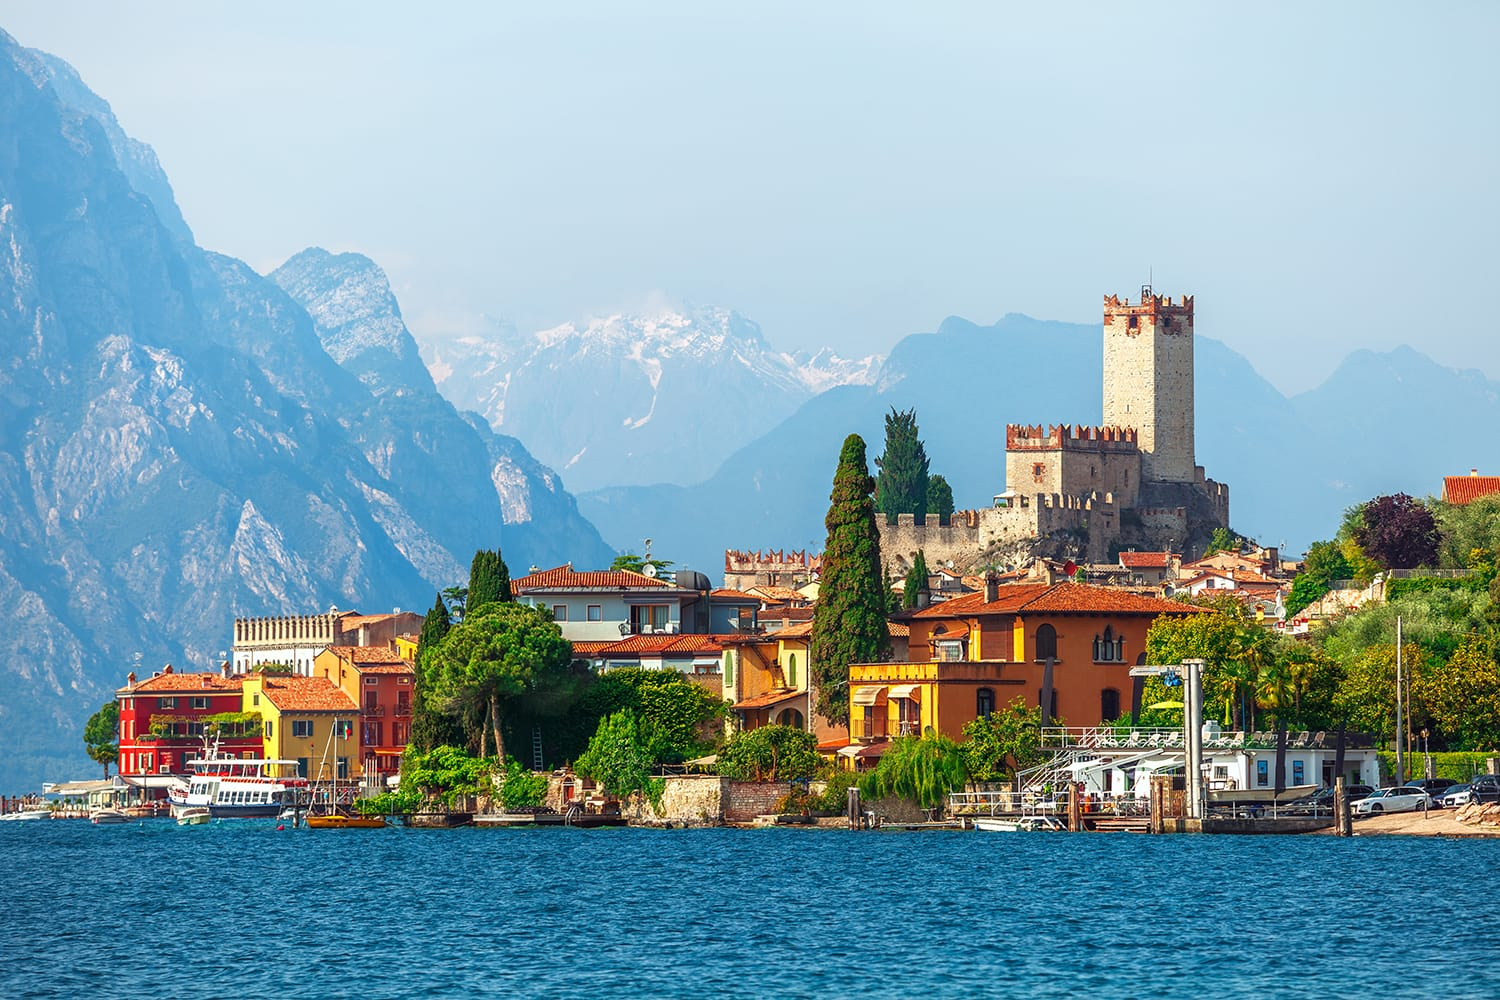 Malcesine town. Ancient tower and fortress in old town malcesine at Garda Lake, Veneto region, Italy. High snowbound top mountains on background summer landscape with colorful houses of Malcesine bank